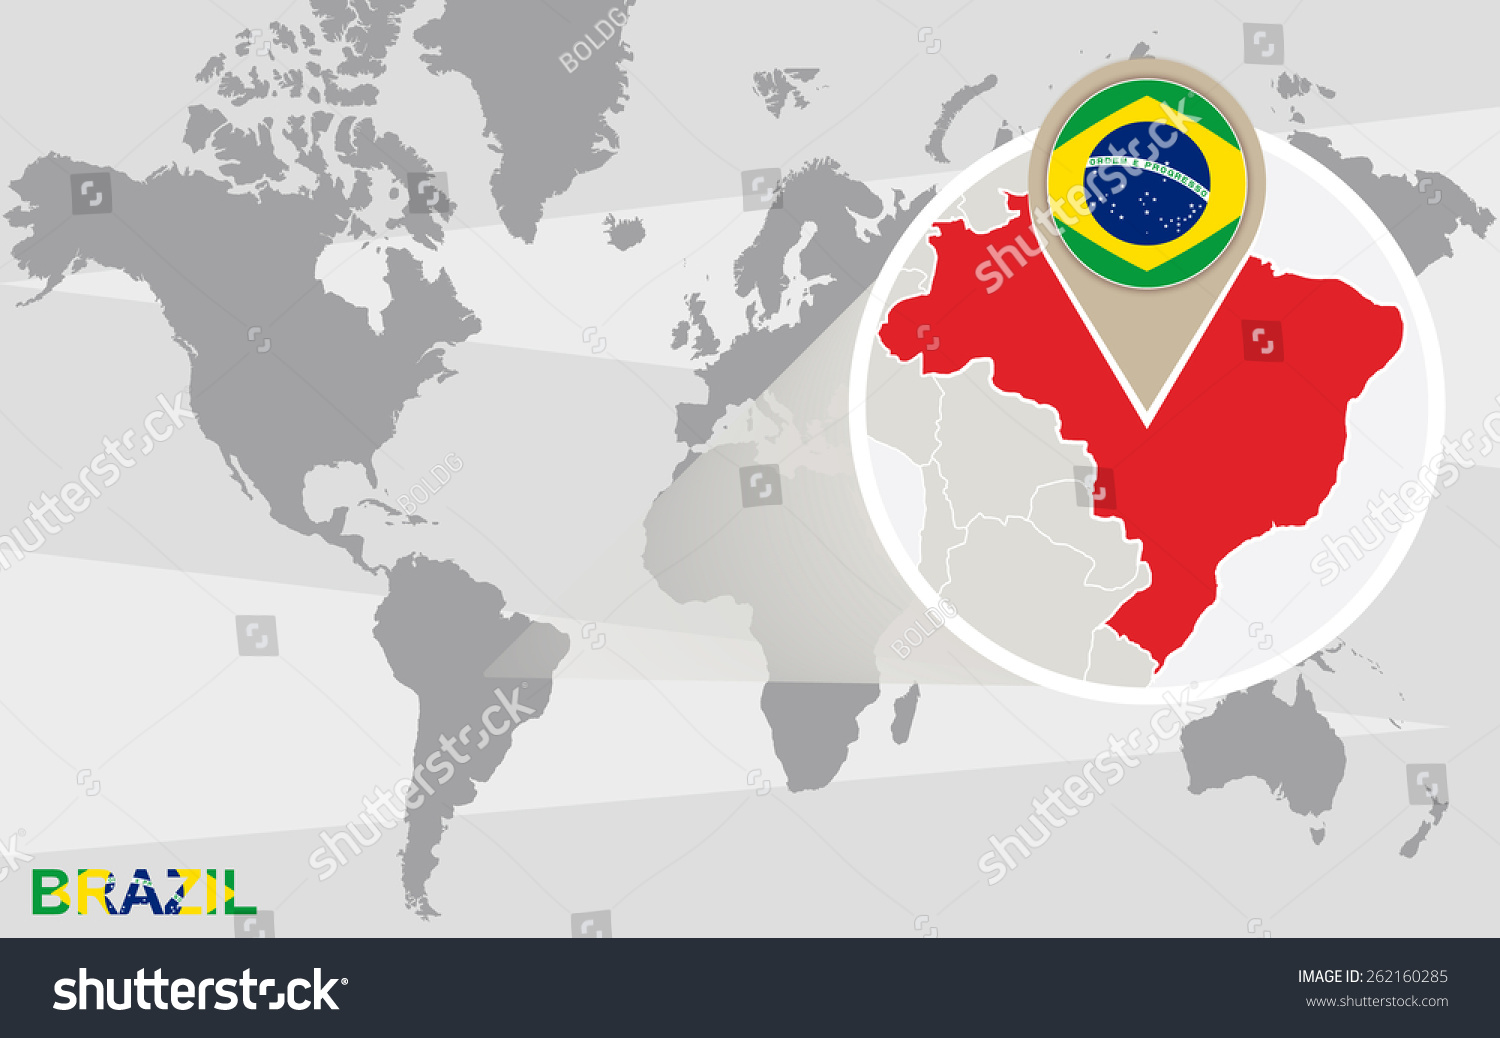 World map magnified brazil brazil flag stock vector 262160285 world map with magnified brazil brazil flag and map gumiabroncs Choice Image